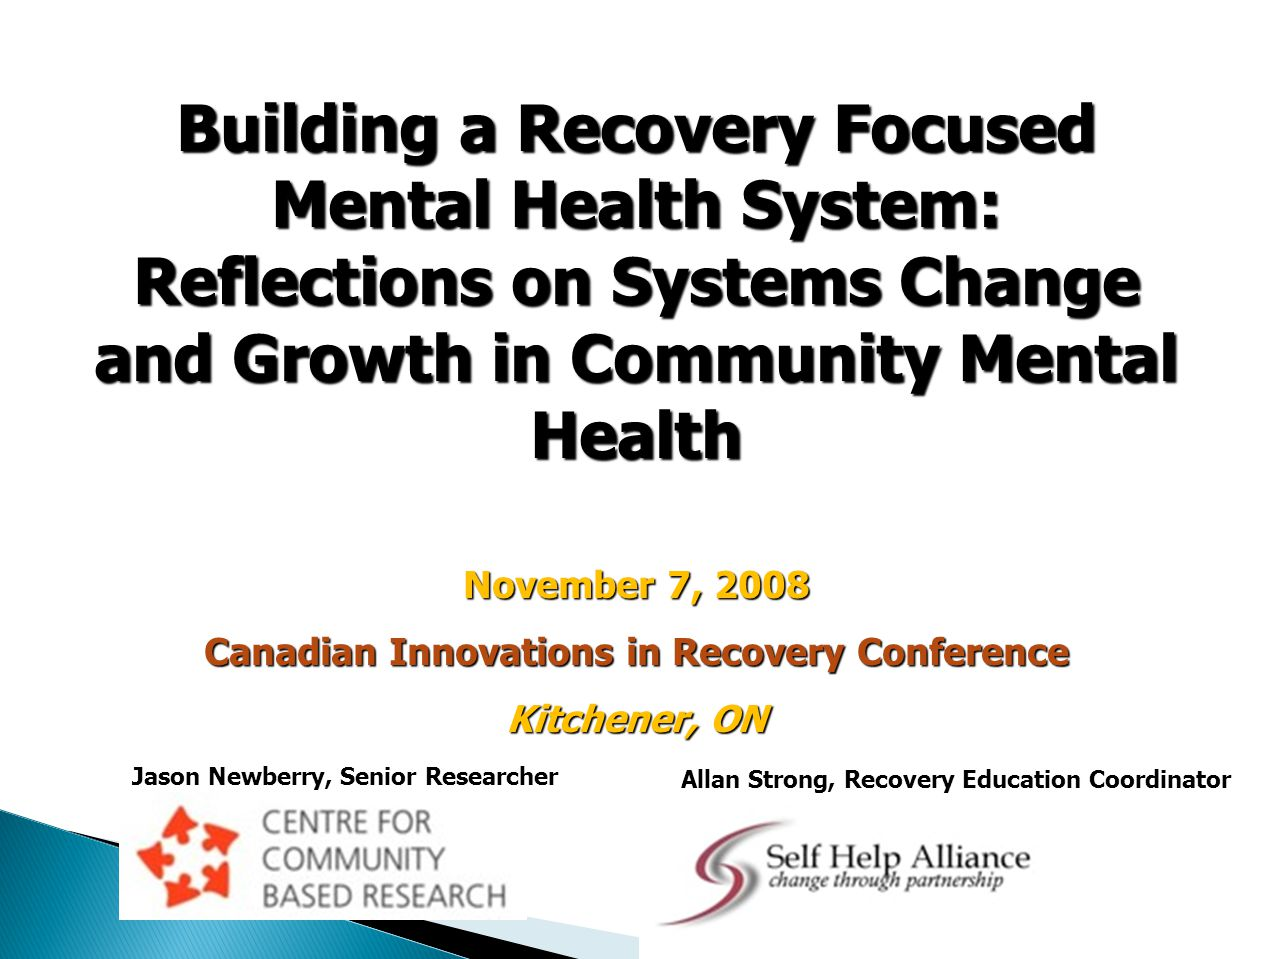 Building a Recovery Focused Mental Health System: Reflections on Systems Change and Growth in Community Mental Health November 7, 2008 Canadian Innovations in Recovery Conference Kitchener, ON Jason Newberry, Senior Researcher Allan Strong, Recovery Education Coordinator